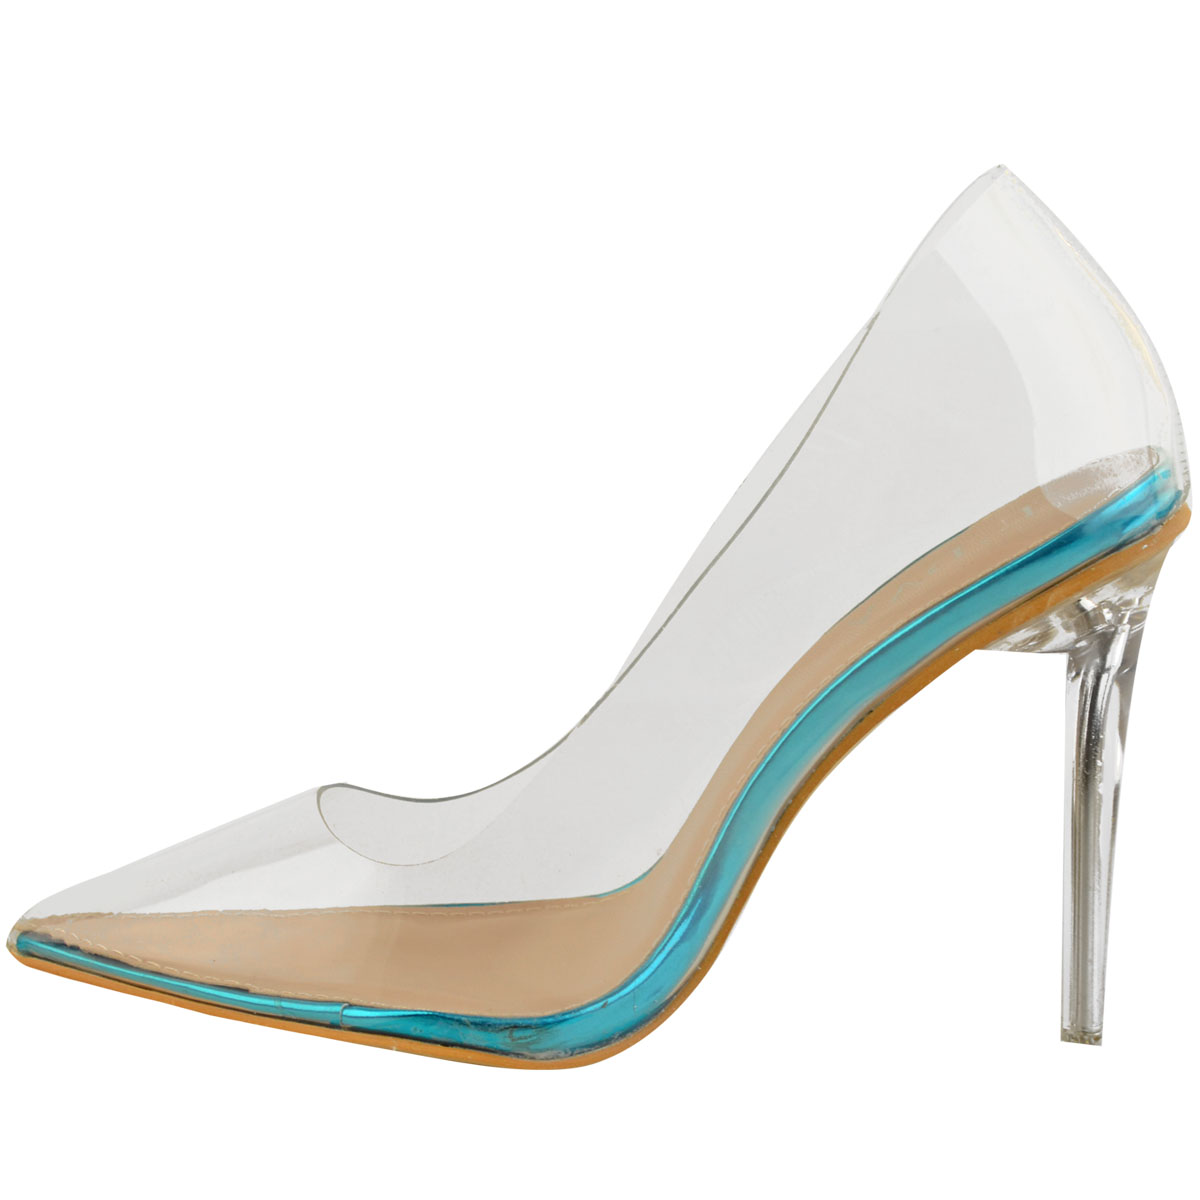 Womens-Ladies-Clear-Perspex-See-Through-High-Heel-Party-Sandals-Court-Shoes thumbnail 8